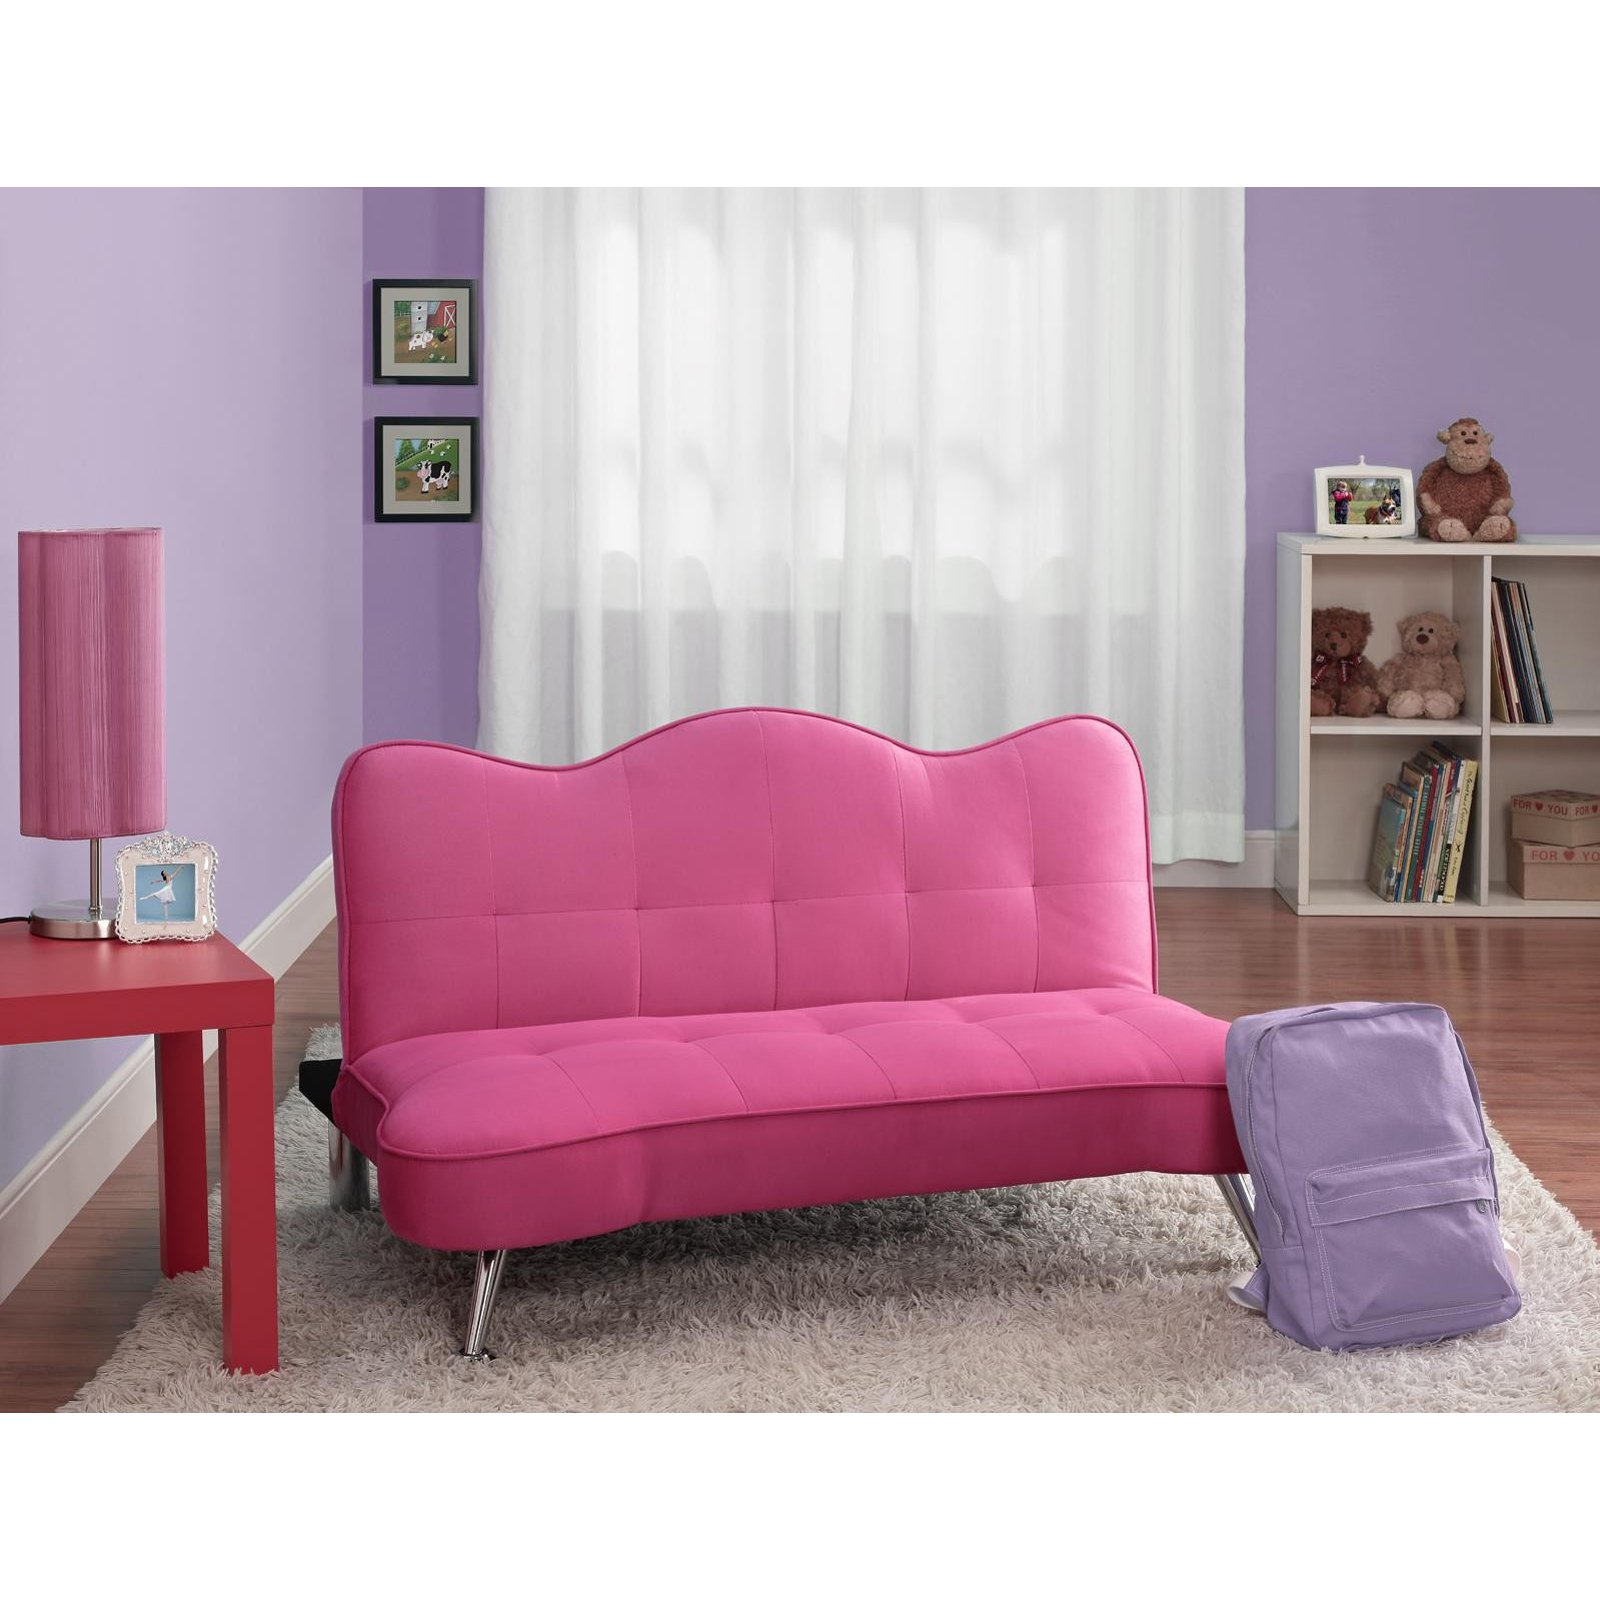 DHP Rose Junior Sofa Lounger Racy Pink Walmart